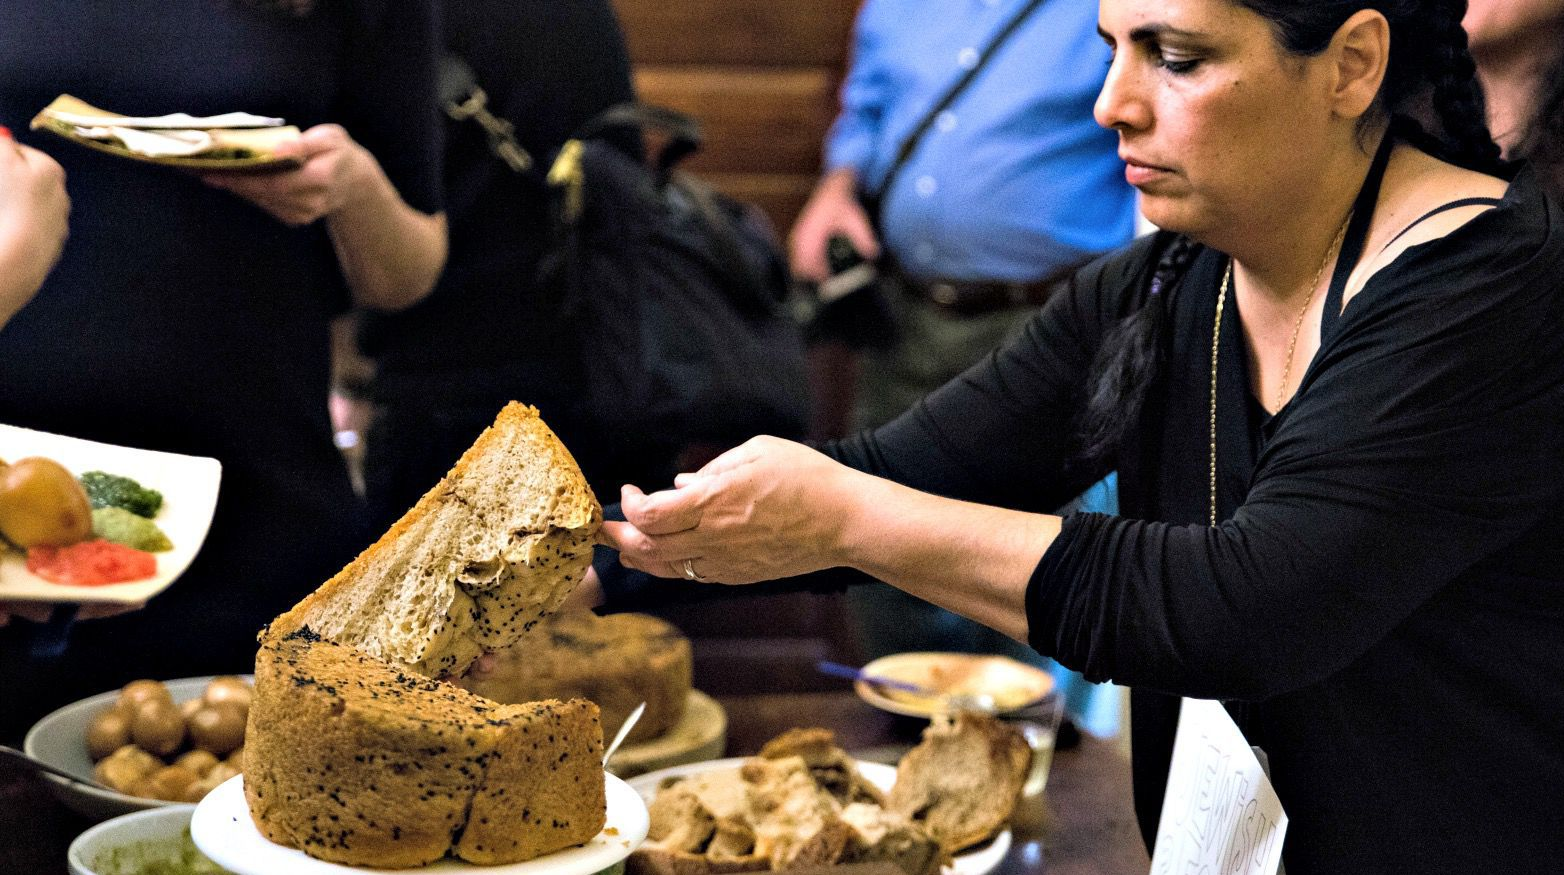 Einat Admony slices the Yemenite Shabbat bread called kubaneh.